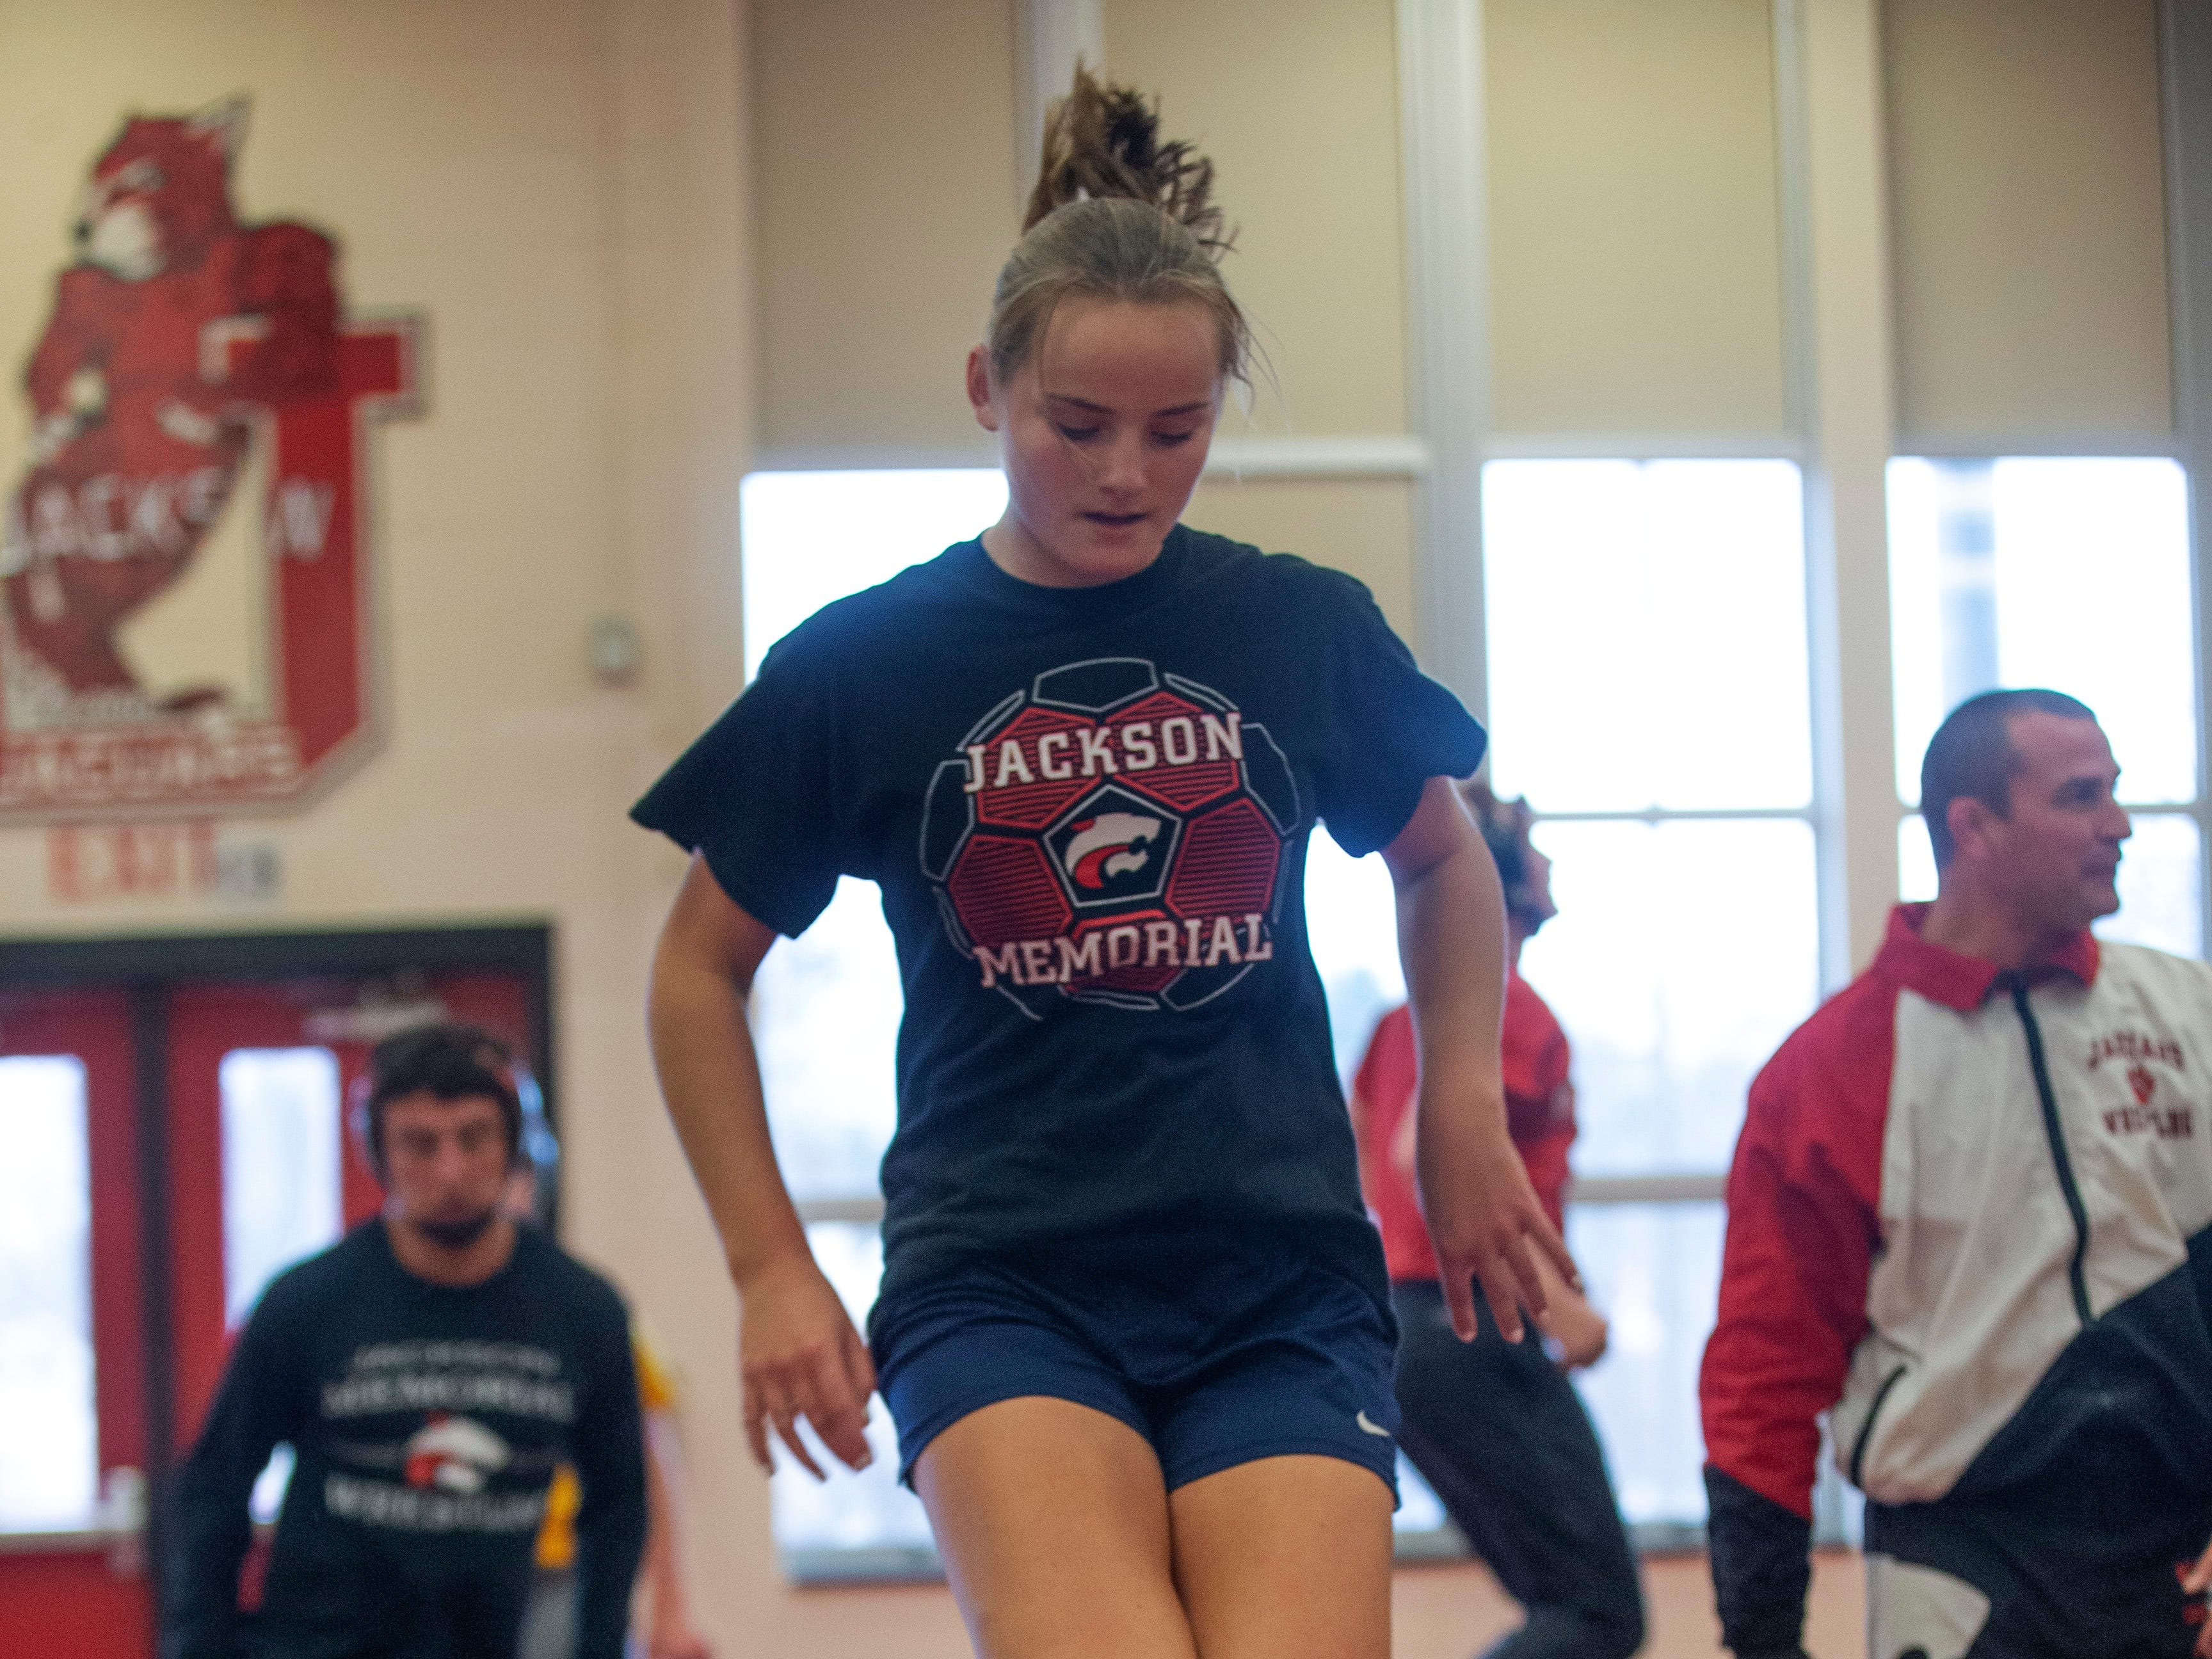 Hannah Reese jumps over Avery Meyers during warm up exercises. NJSIAA is offering wrestling for girls this year and they will participate in an all girls tournament at the end of the season. Jackson Memorial Wrestling is fielding a full girls team this year. Boy and girls practice together although mostly match up with partners of their own sex for most drills.